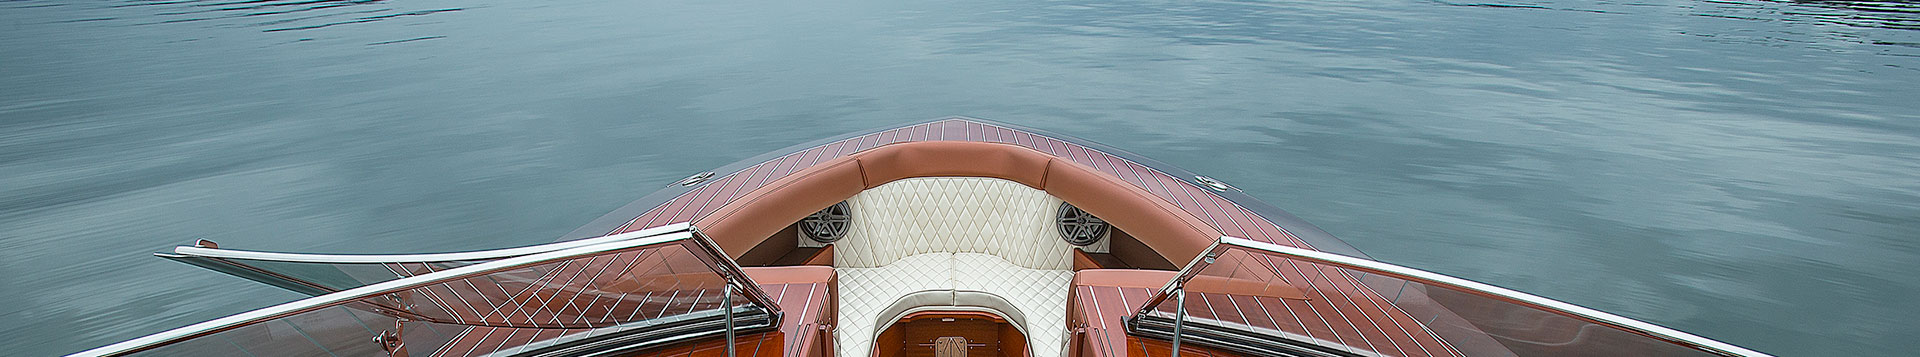 ways to extend your boat's battery life